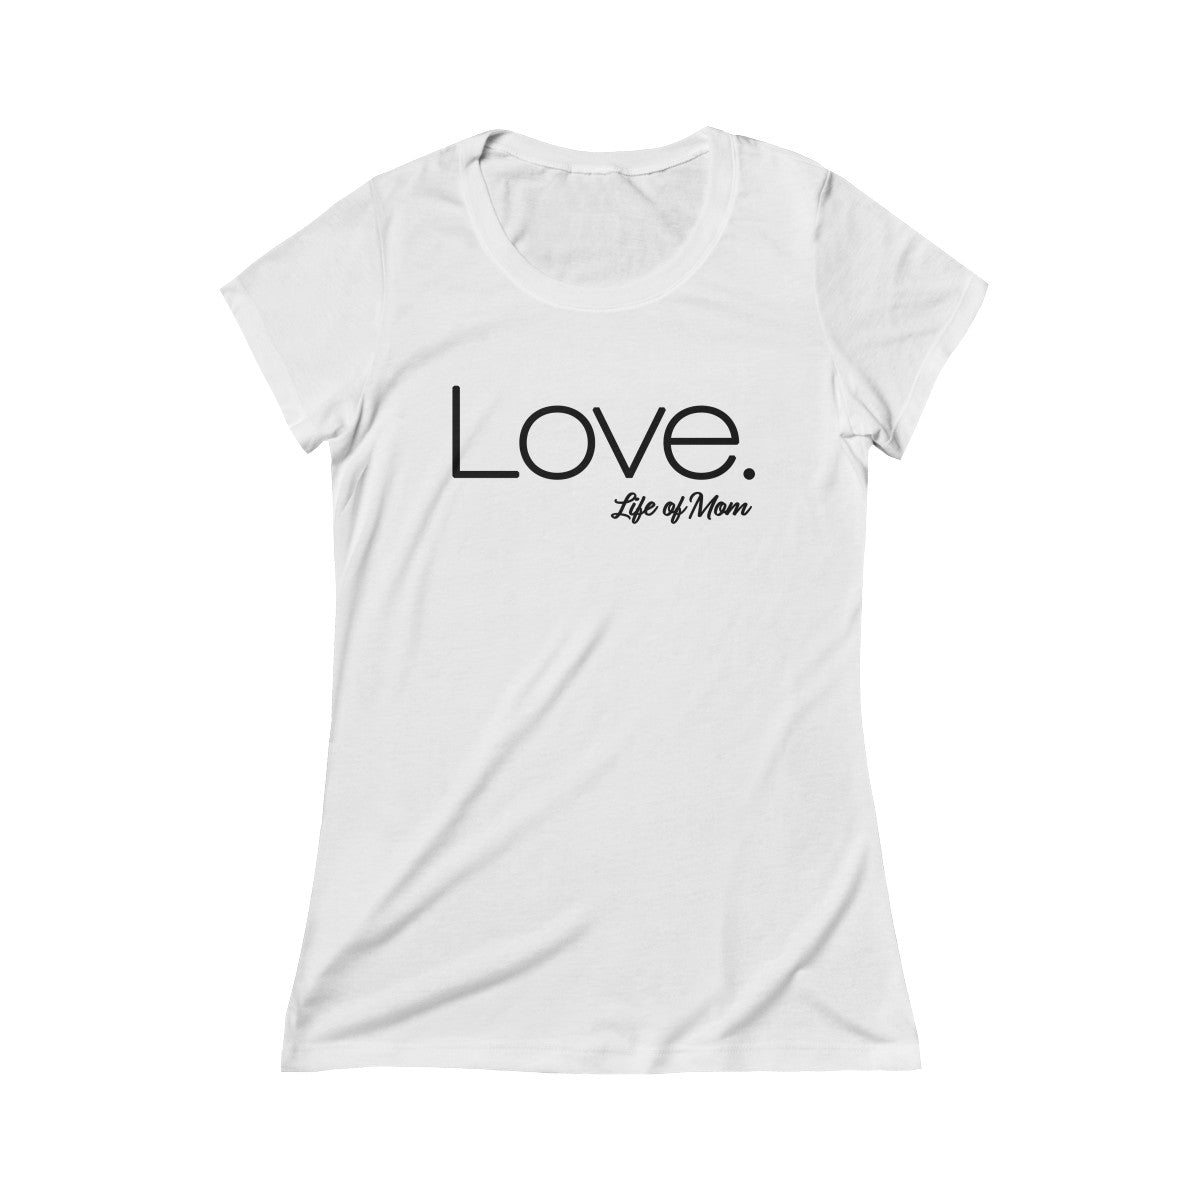 Life of Mom - Love T-Shirt